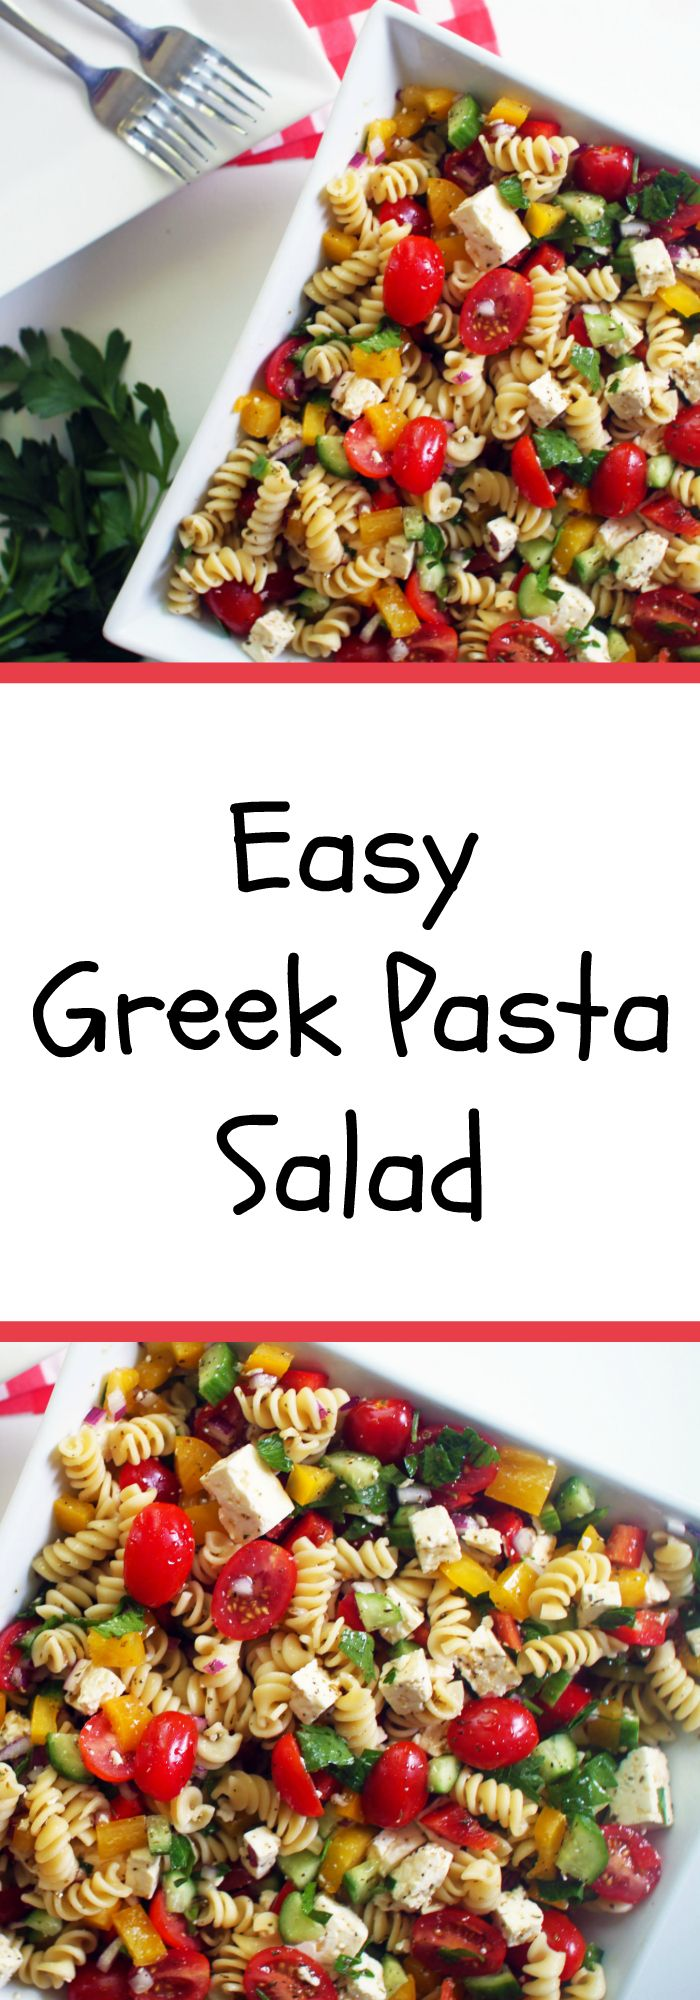 This easy Greek pasta salad is made with simple, basic ingredients including peppers, mini tomatoes, cucumber, feta, parsley and red onion. The vinaigrette is made with olive oil, red wine vinegar, lots of oregano, garlic, salt and pepper and fresh squeezed lemon juice.